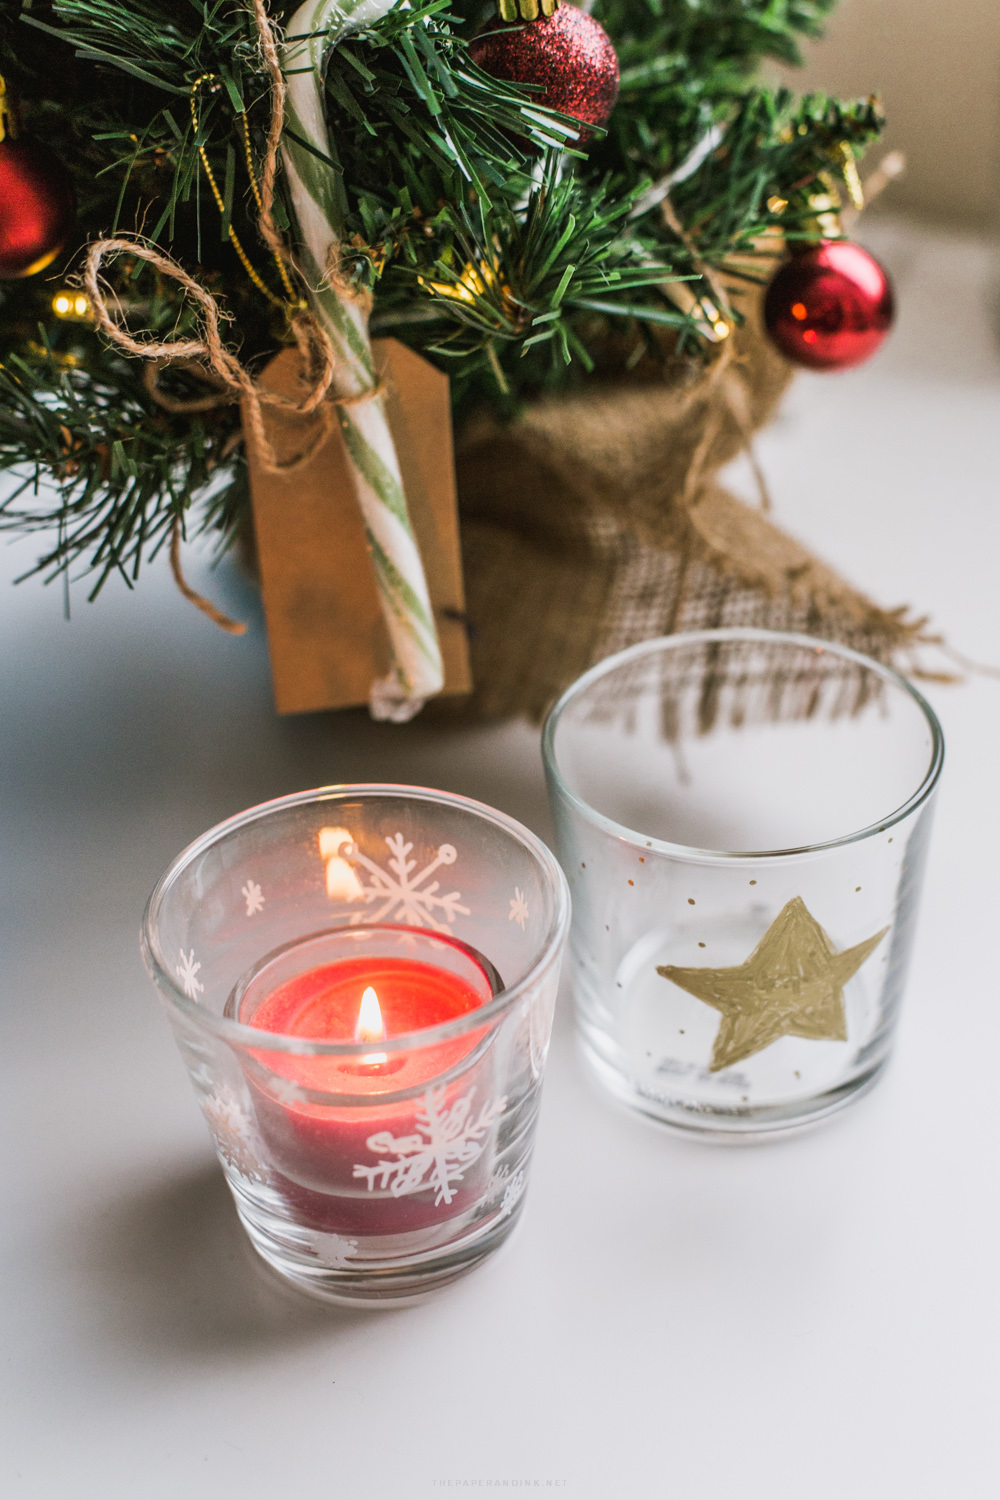 DIY Decorated glasses with Sharpie pens for Christmas.